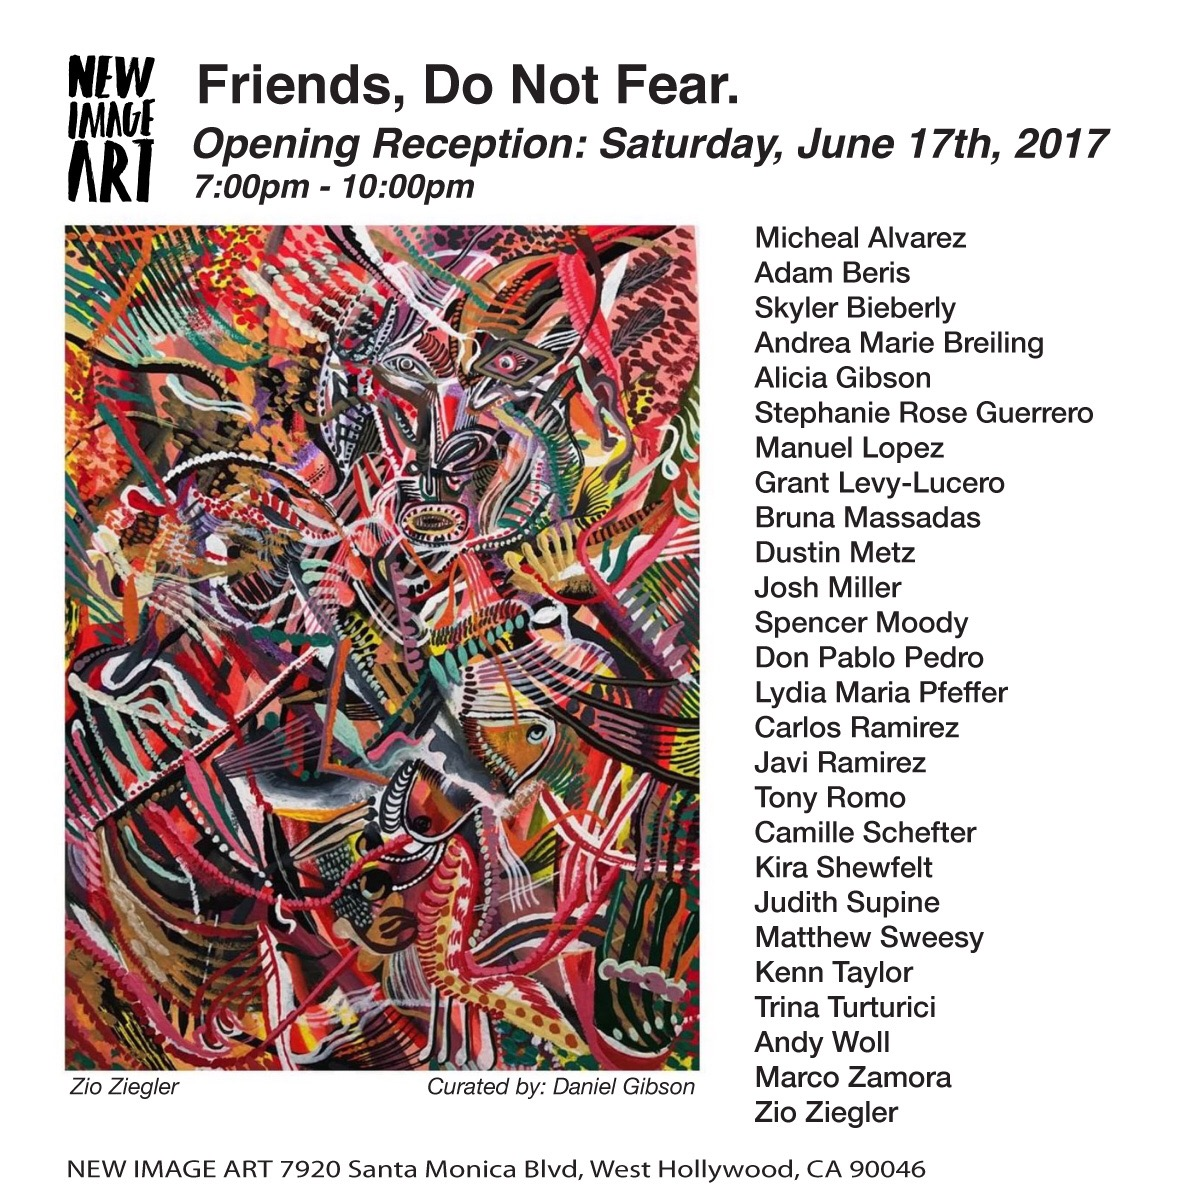 GROUP EXHIBITION - FRIENDS DO NOT FEAR